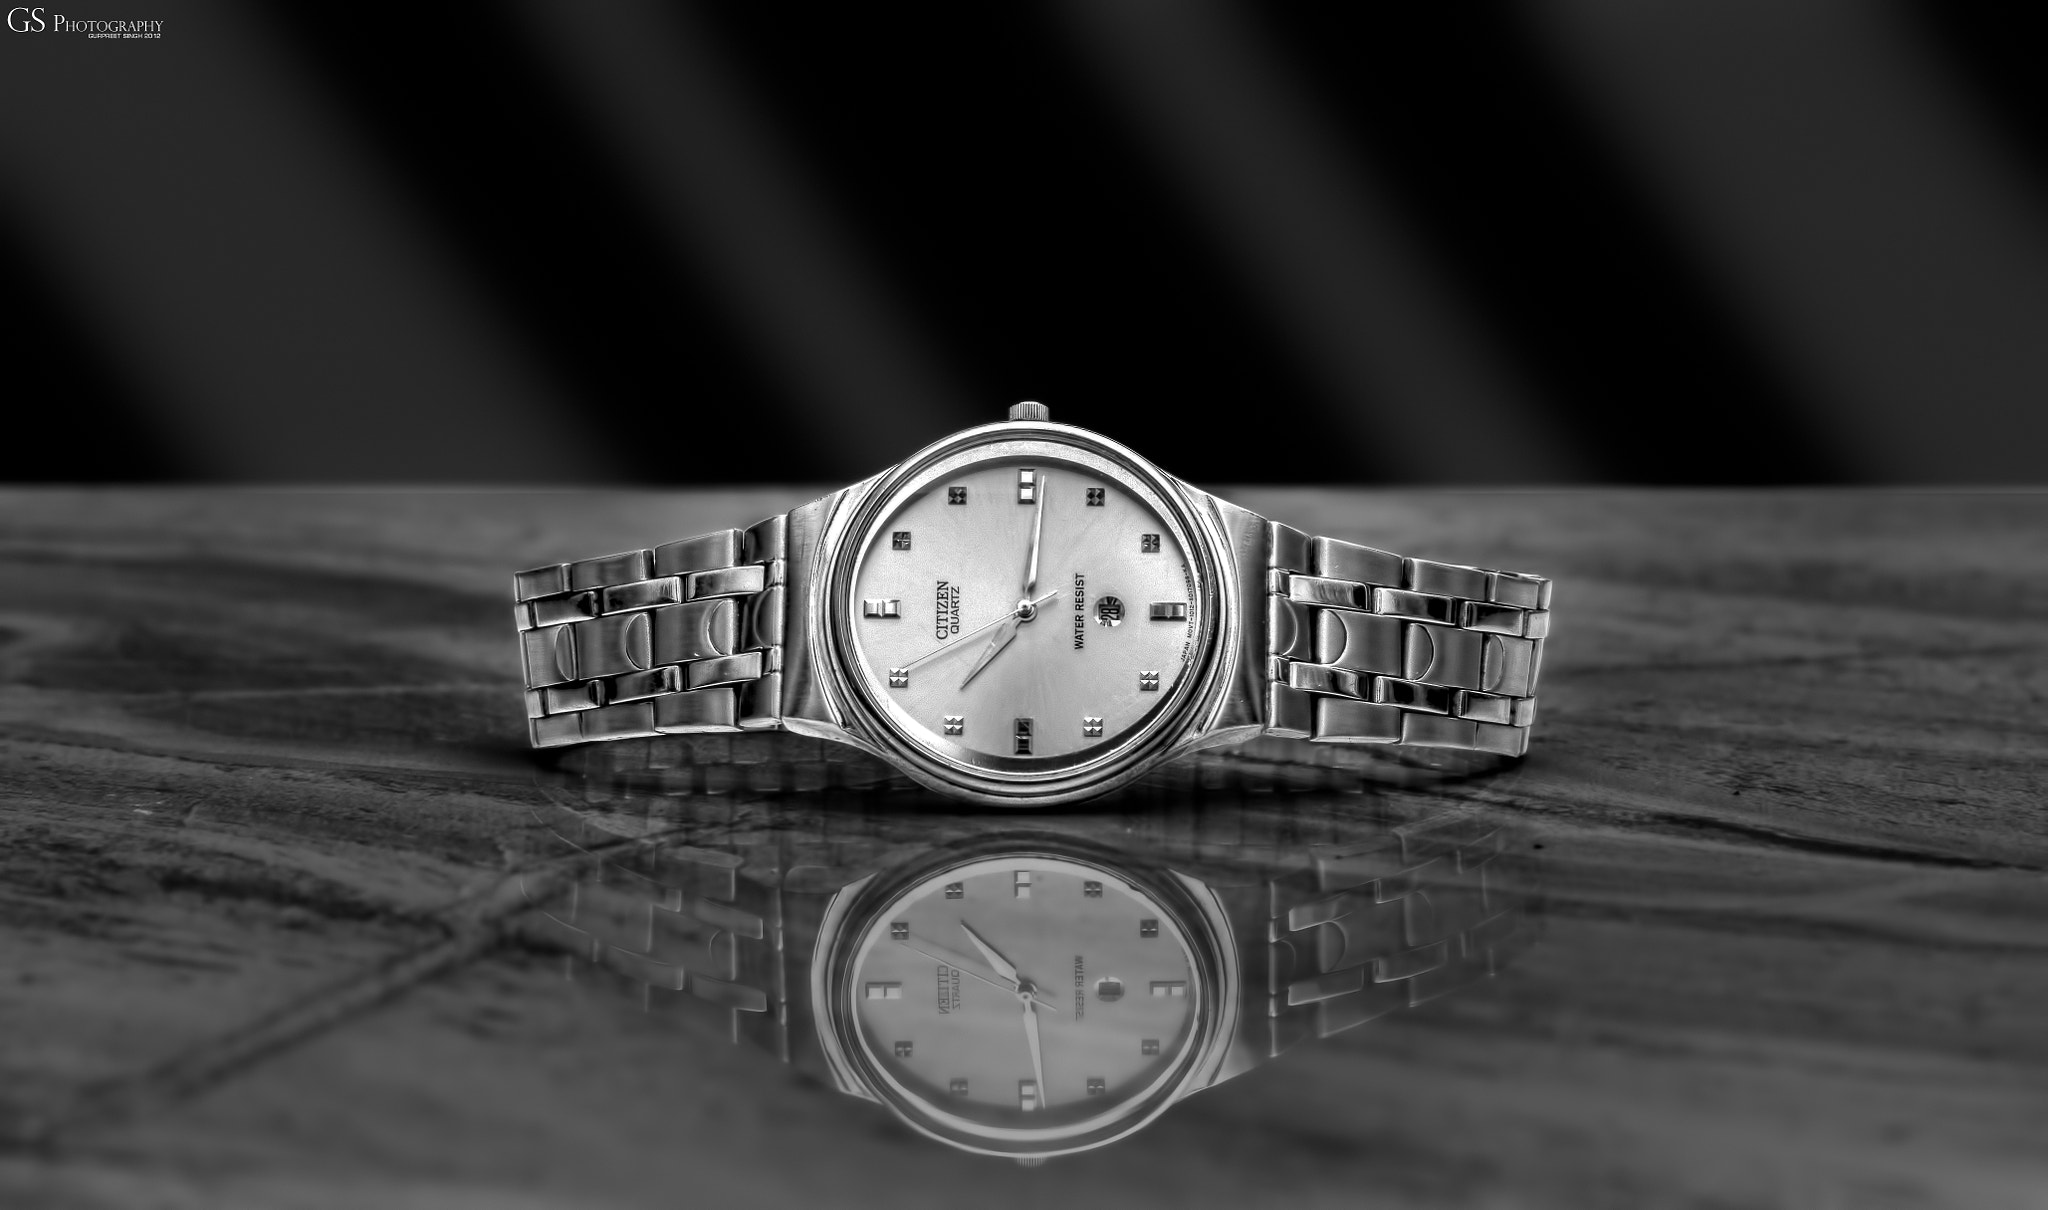 Photograph Watch by Gurpreet singh on 500px